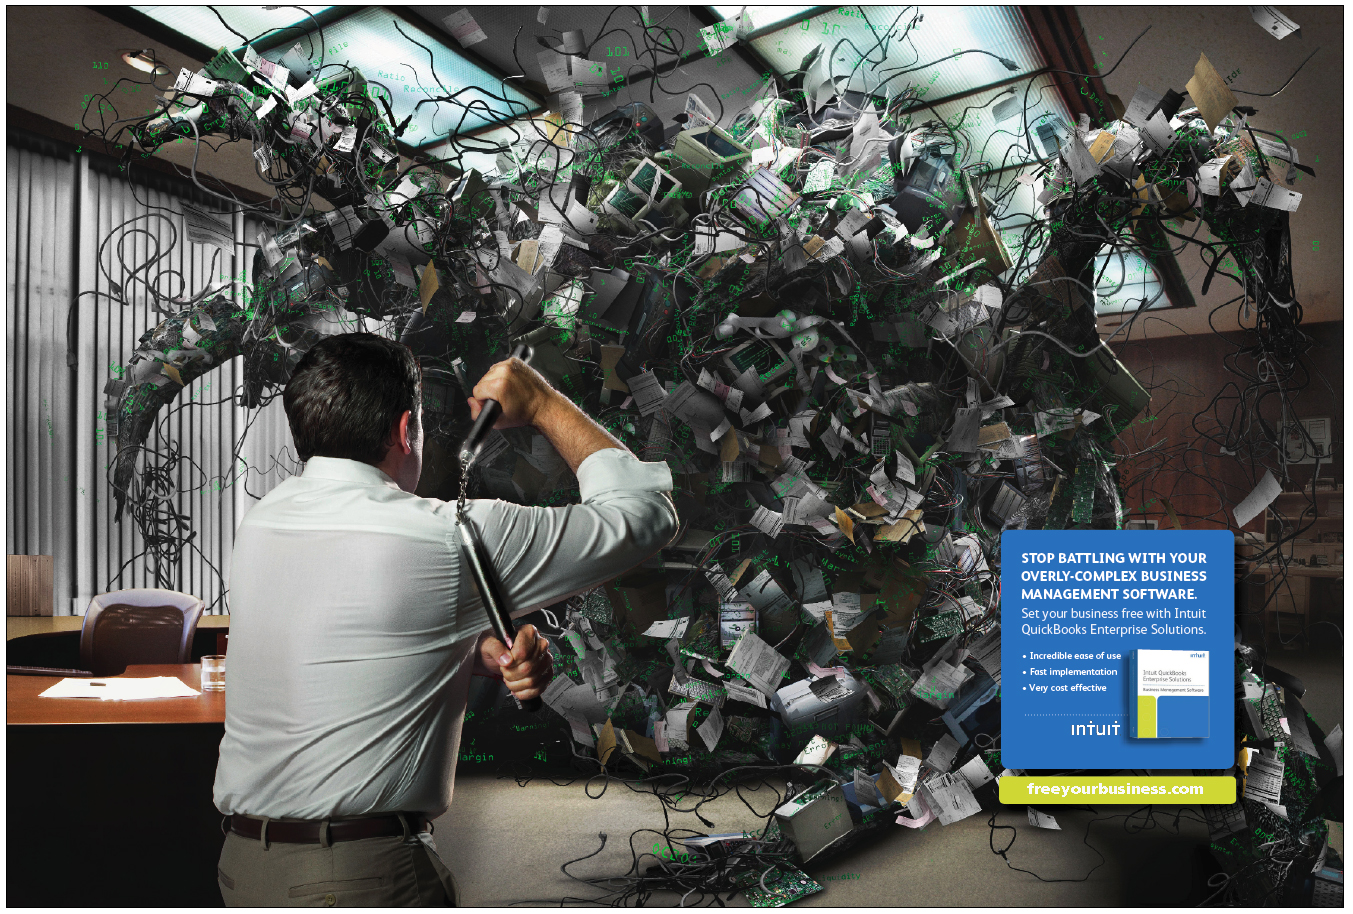 Magazine print spread for Intuit Enterprise Solutions software.